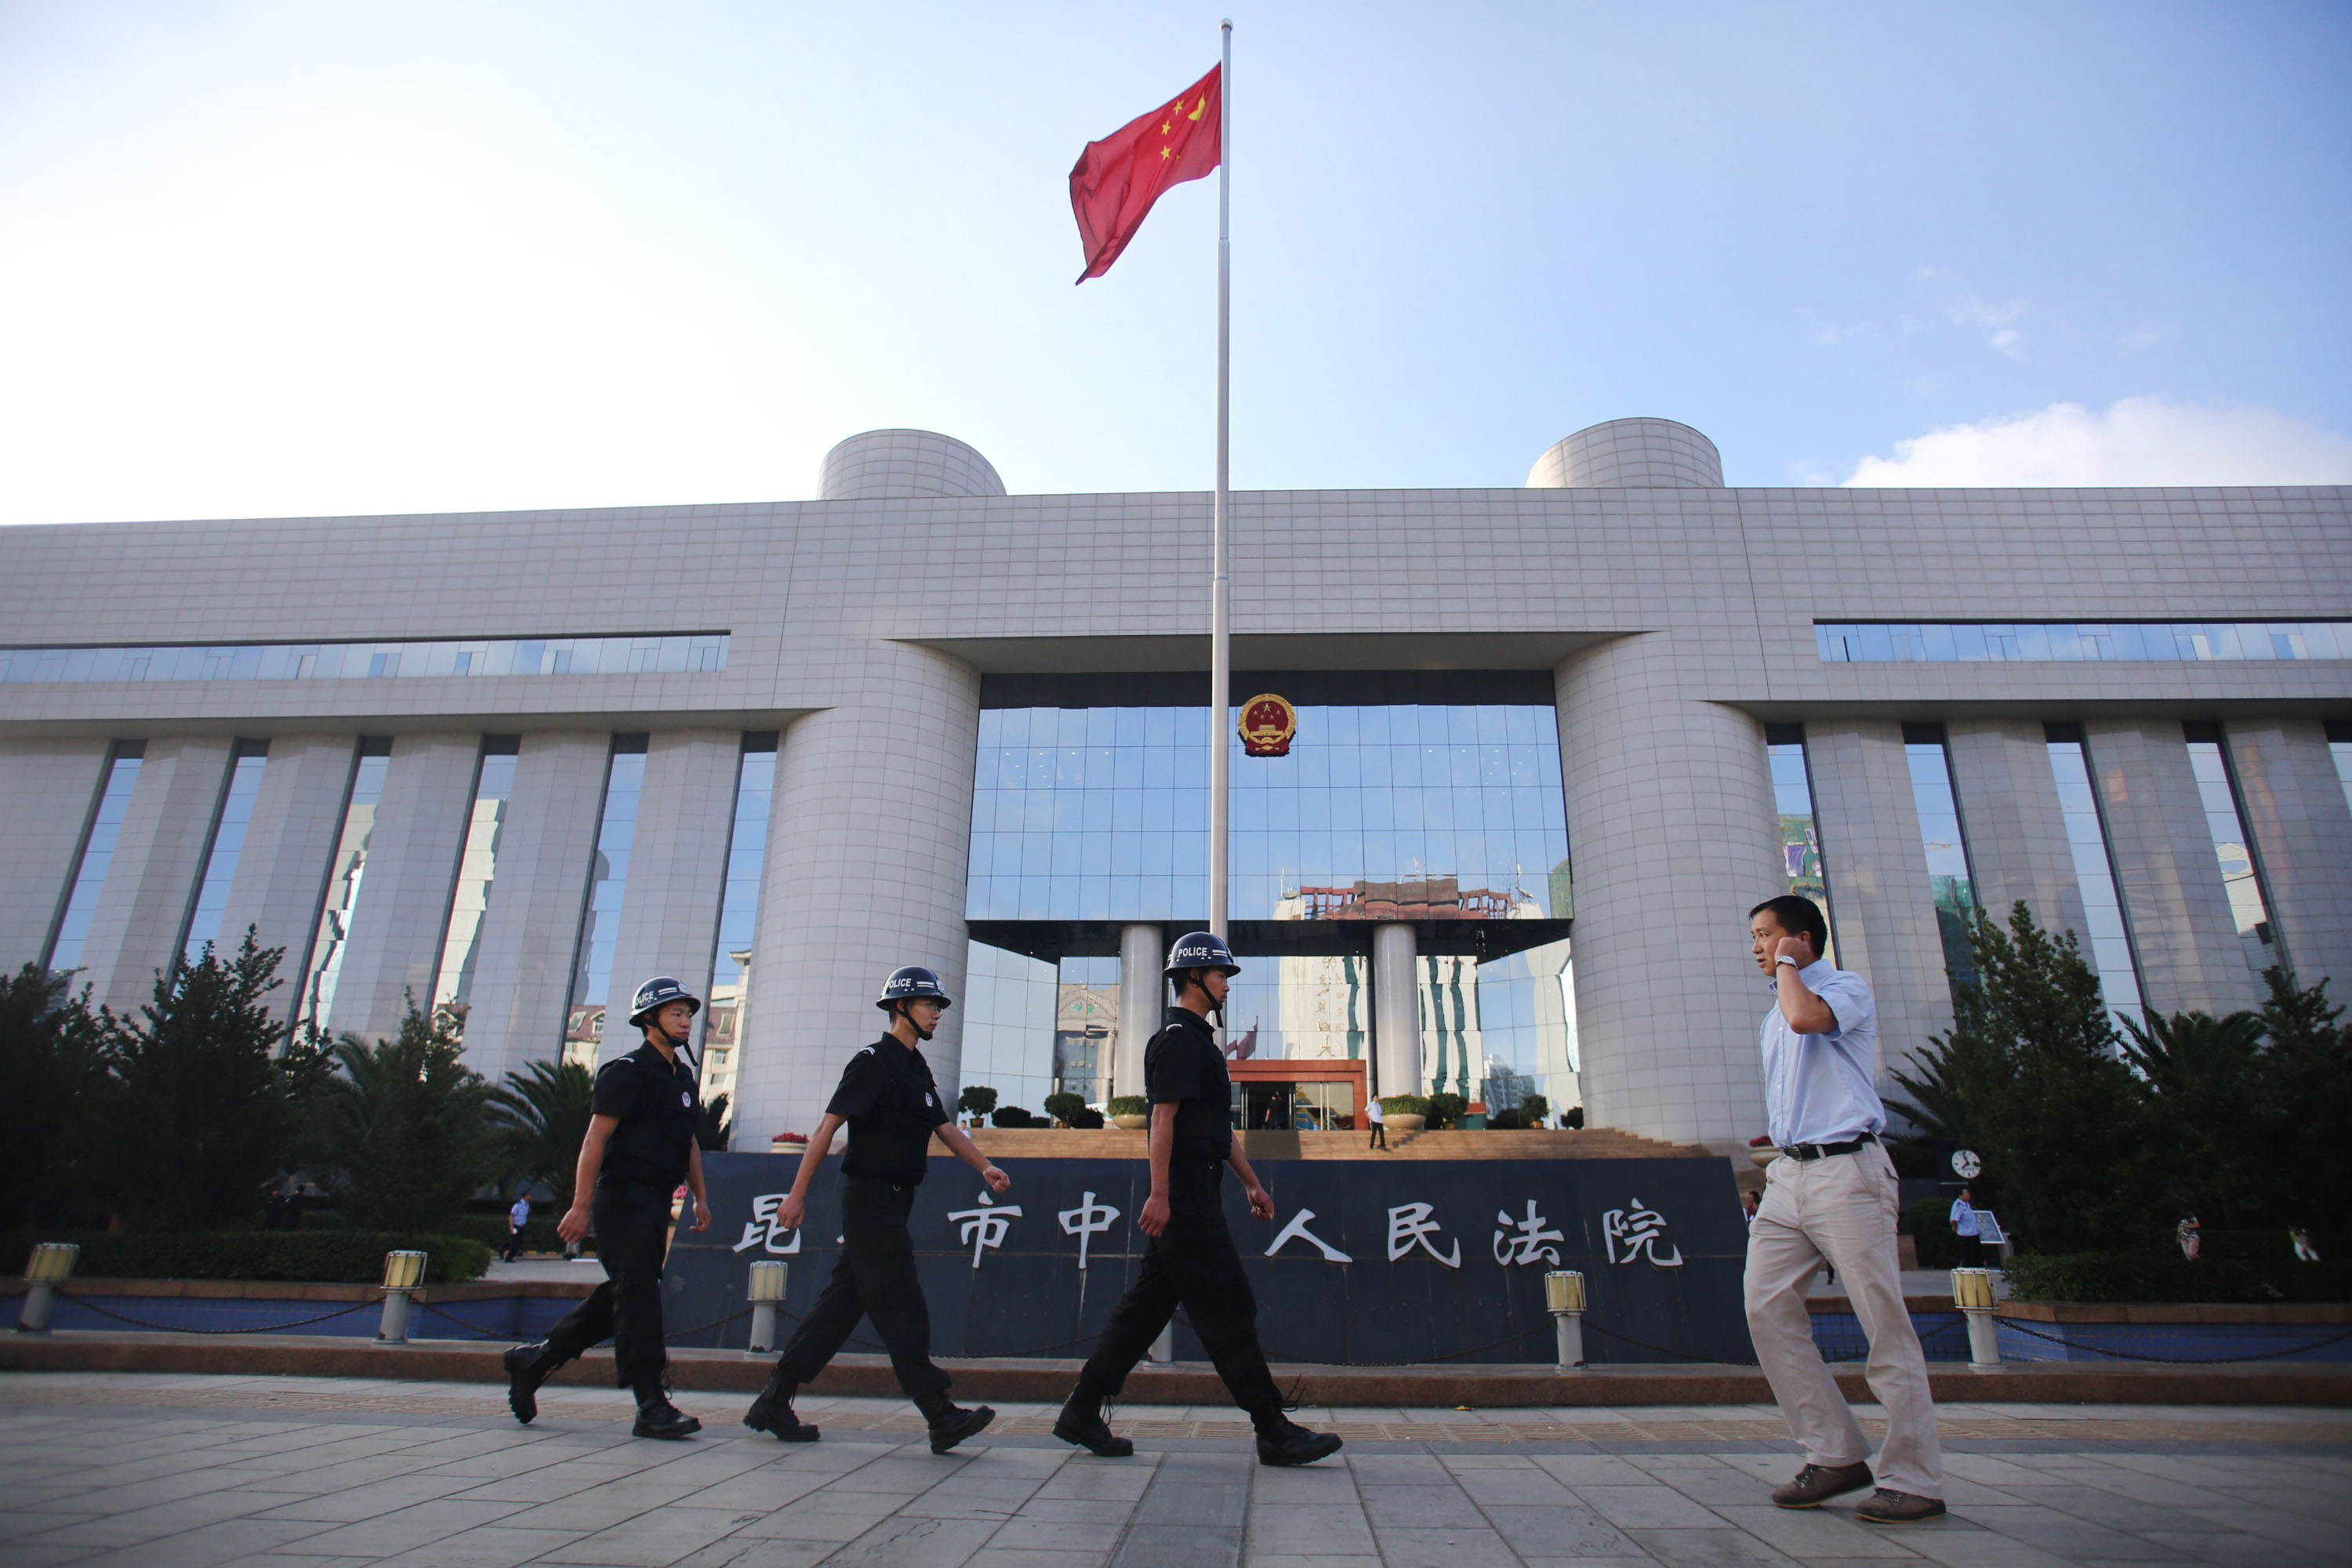 CHINA SECURITY: Under Veil of Cybersecurity, China Looks to Govern the Global Internet